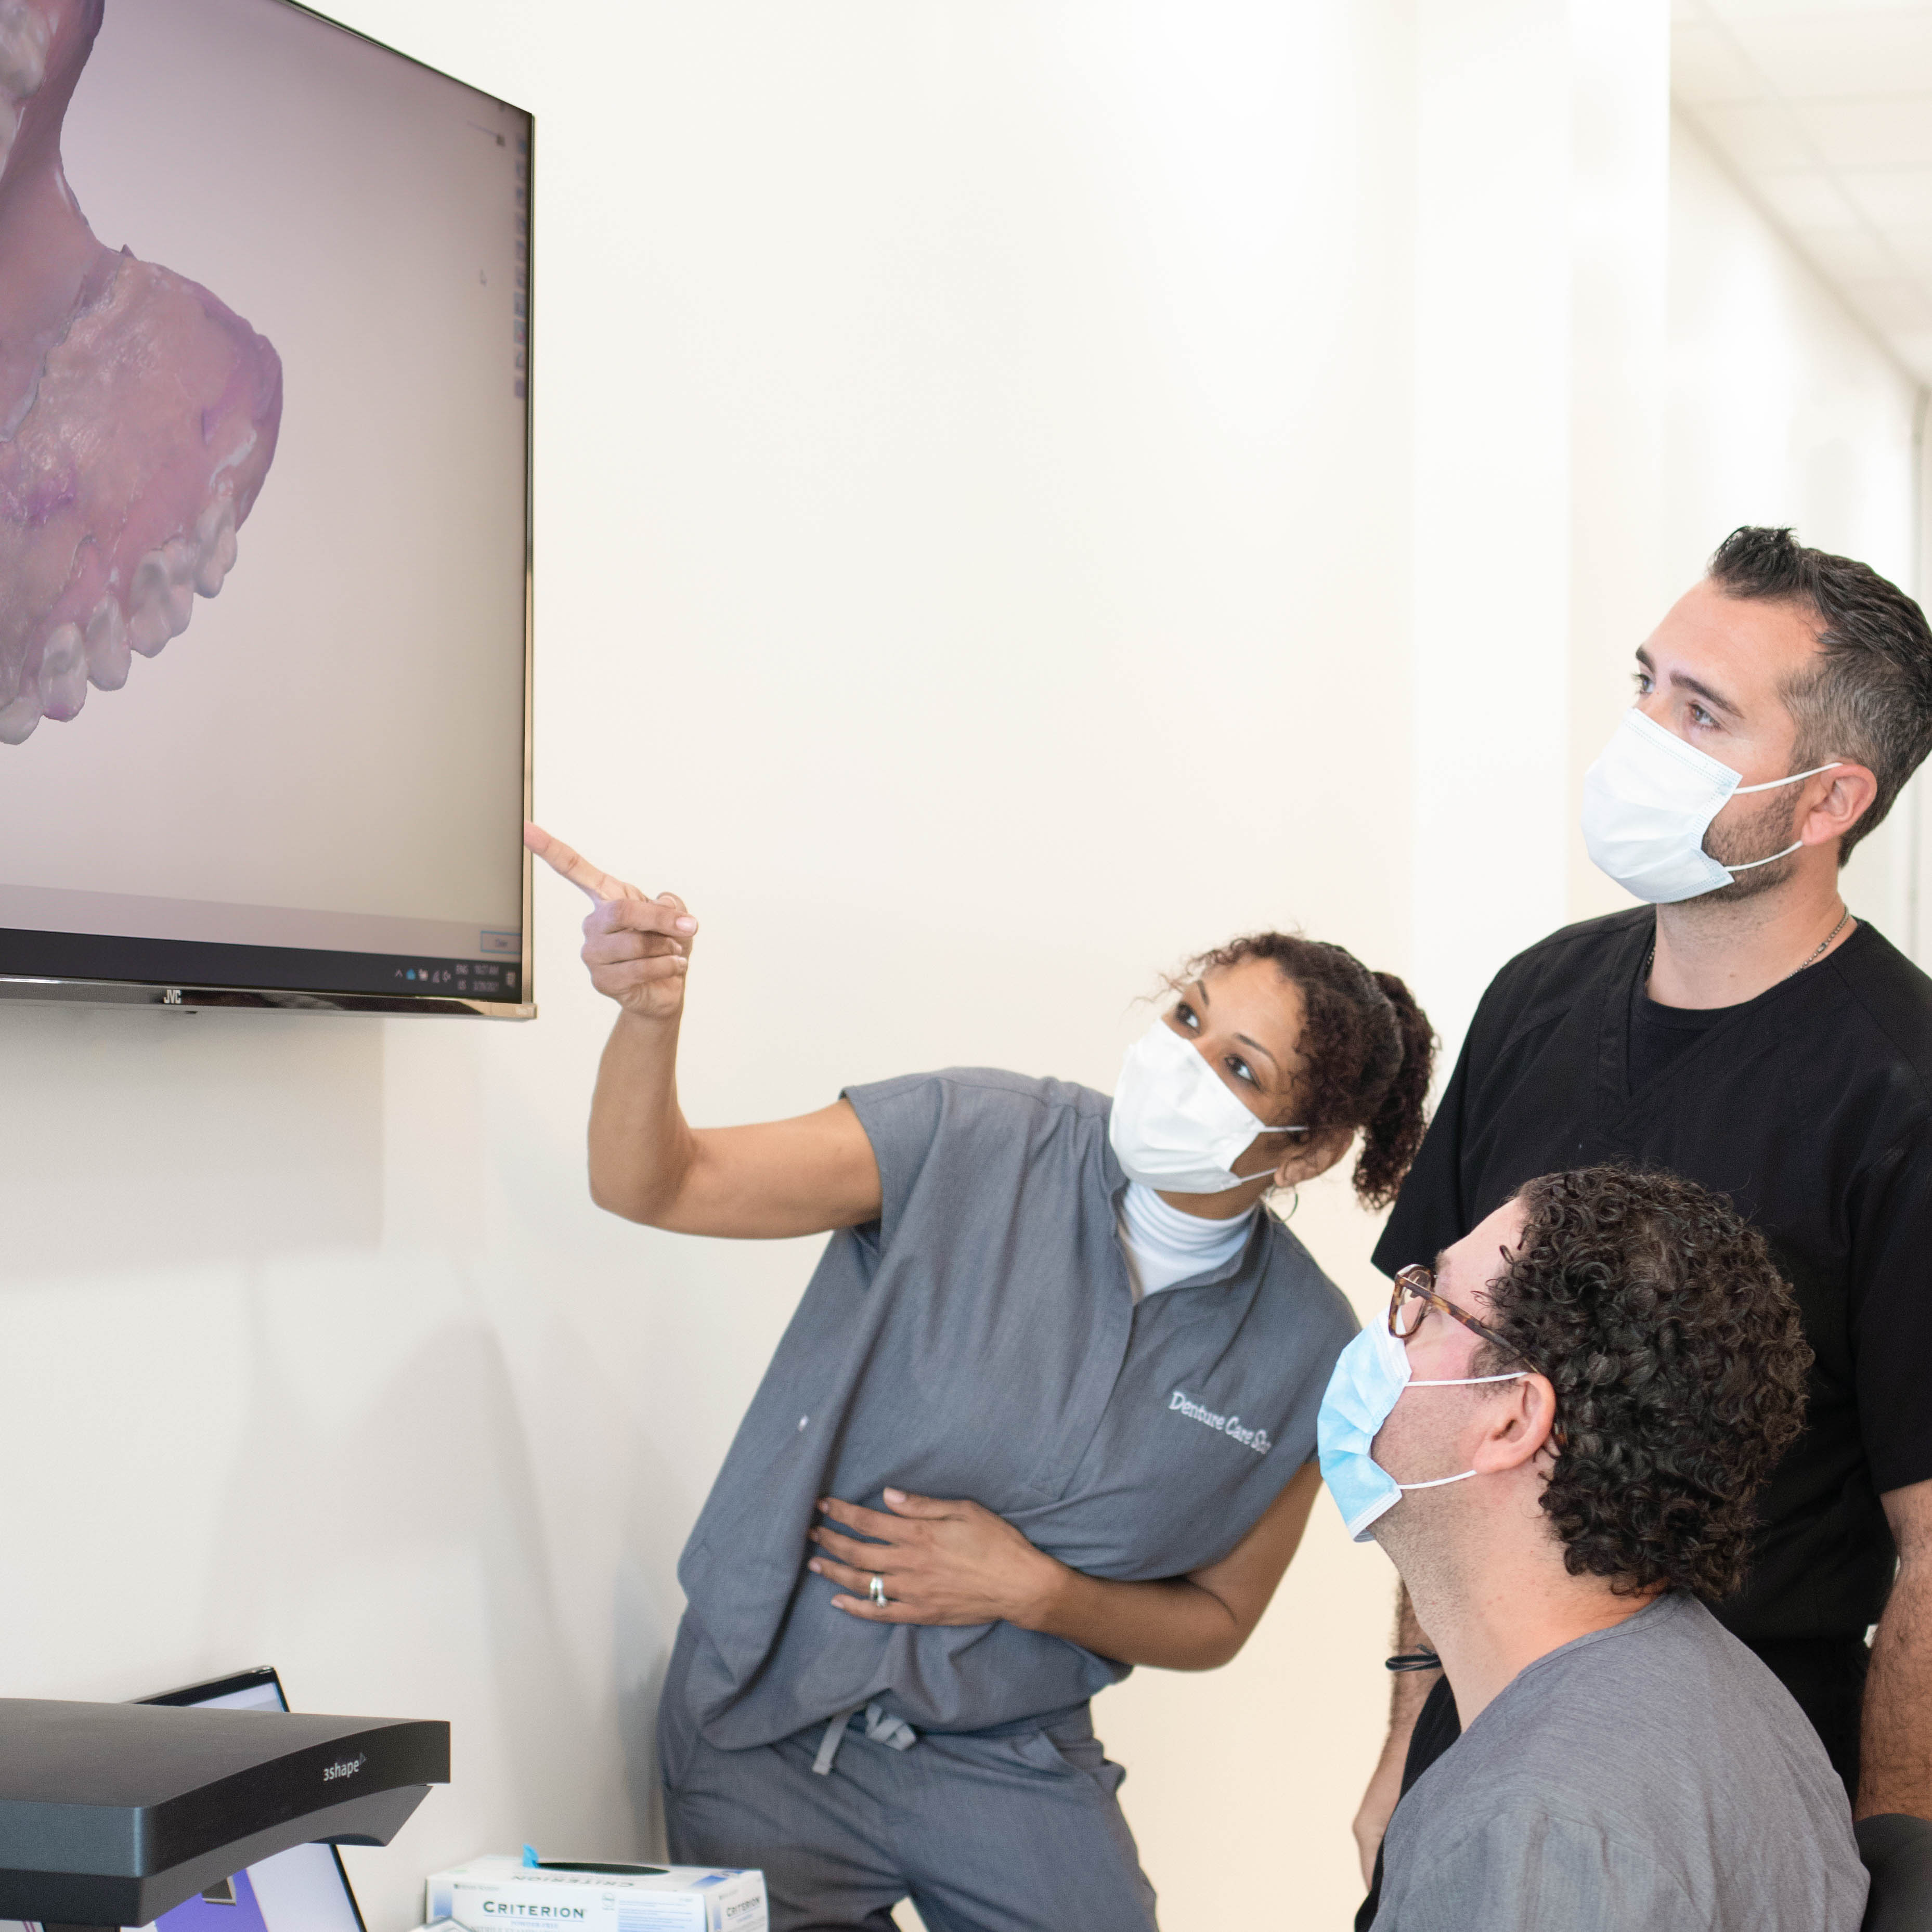 Step 2:  Dental assistant scanning immediate or permanent dentures with 3D dental technology to create affordable, same day dentures. The patient chooses either dentures refit or replica false teeth replacements.